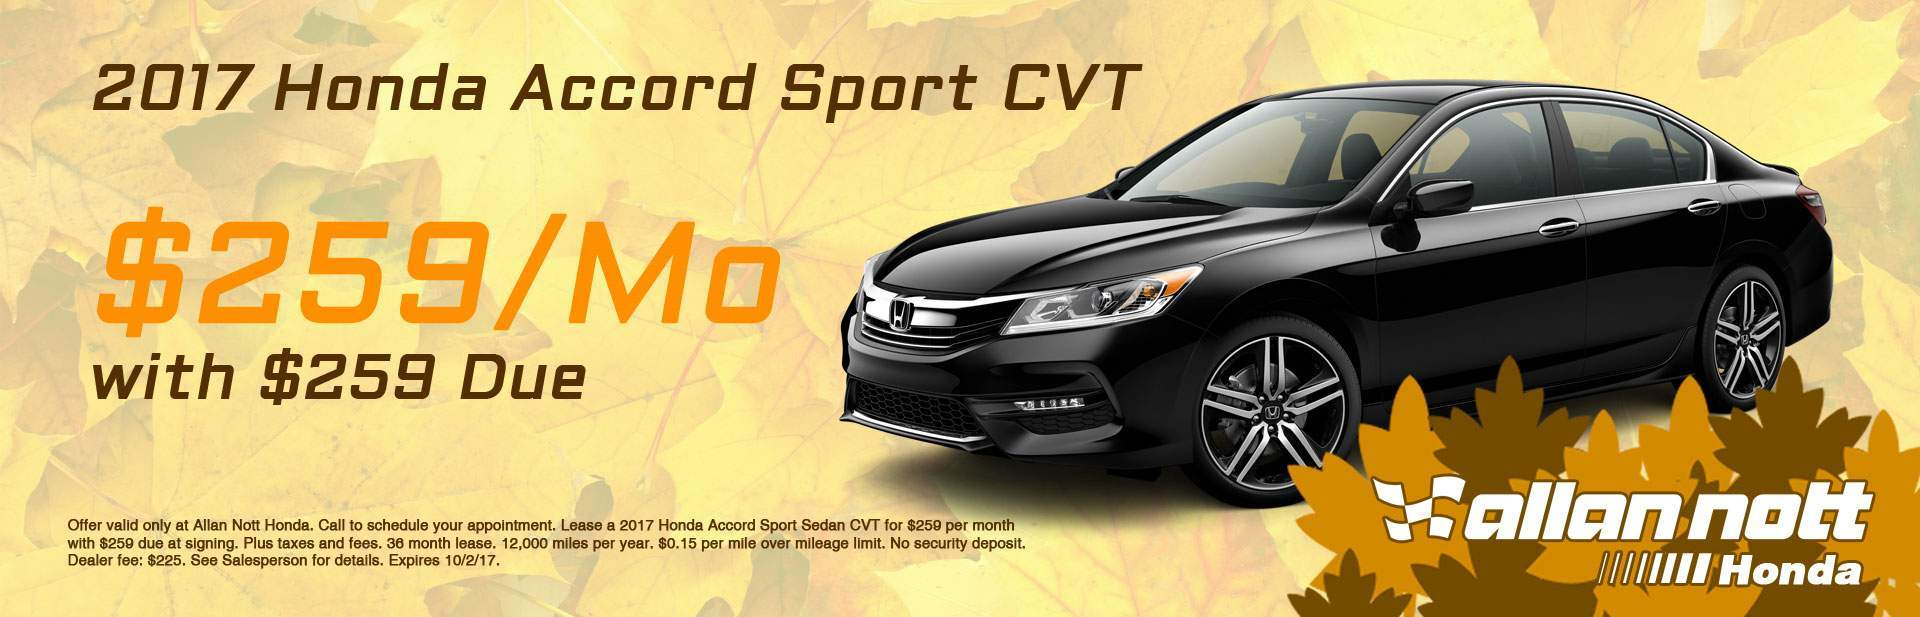 Lease a 2017 Honda Accord Sport for $259/Mo from Allan Nott Honda today!